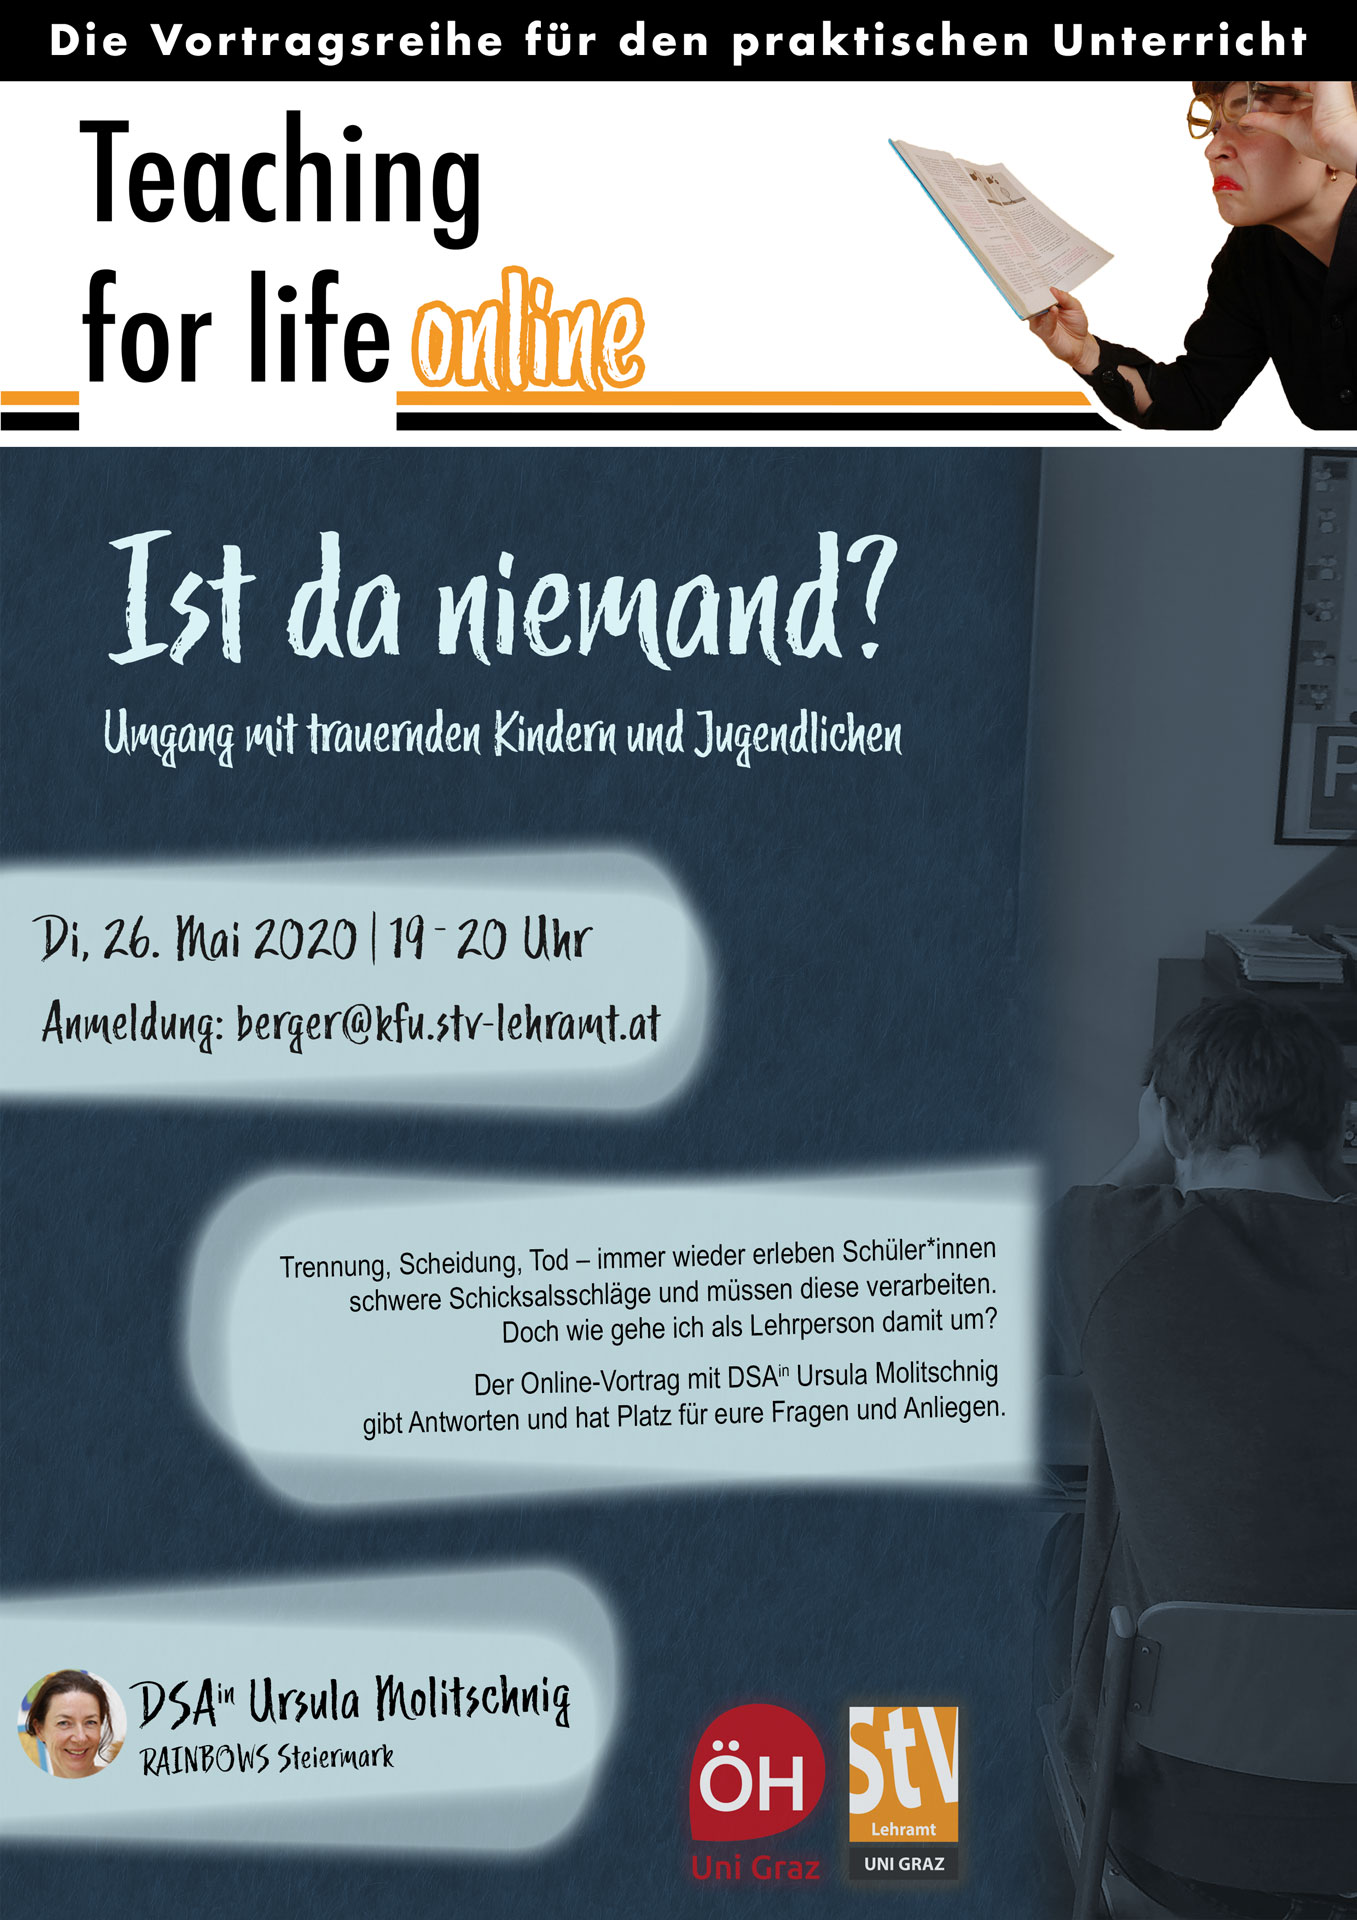 Ist da niemand (Teaching for life)